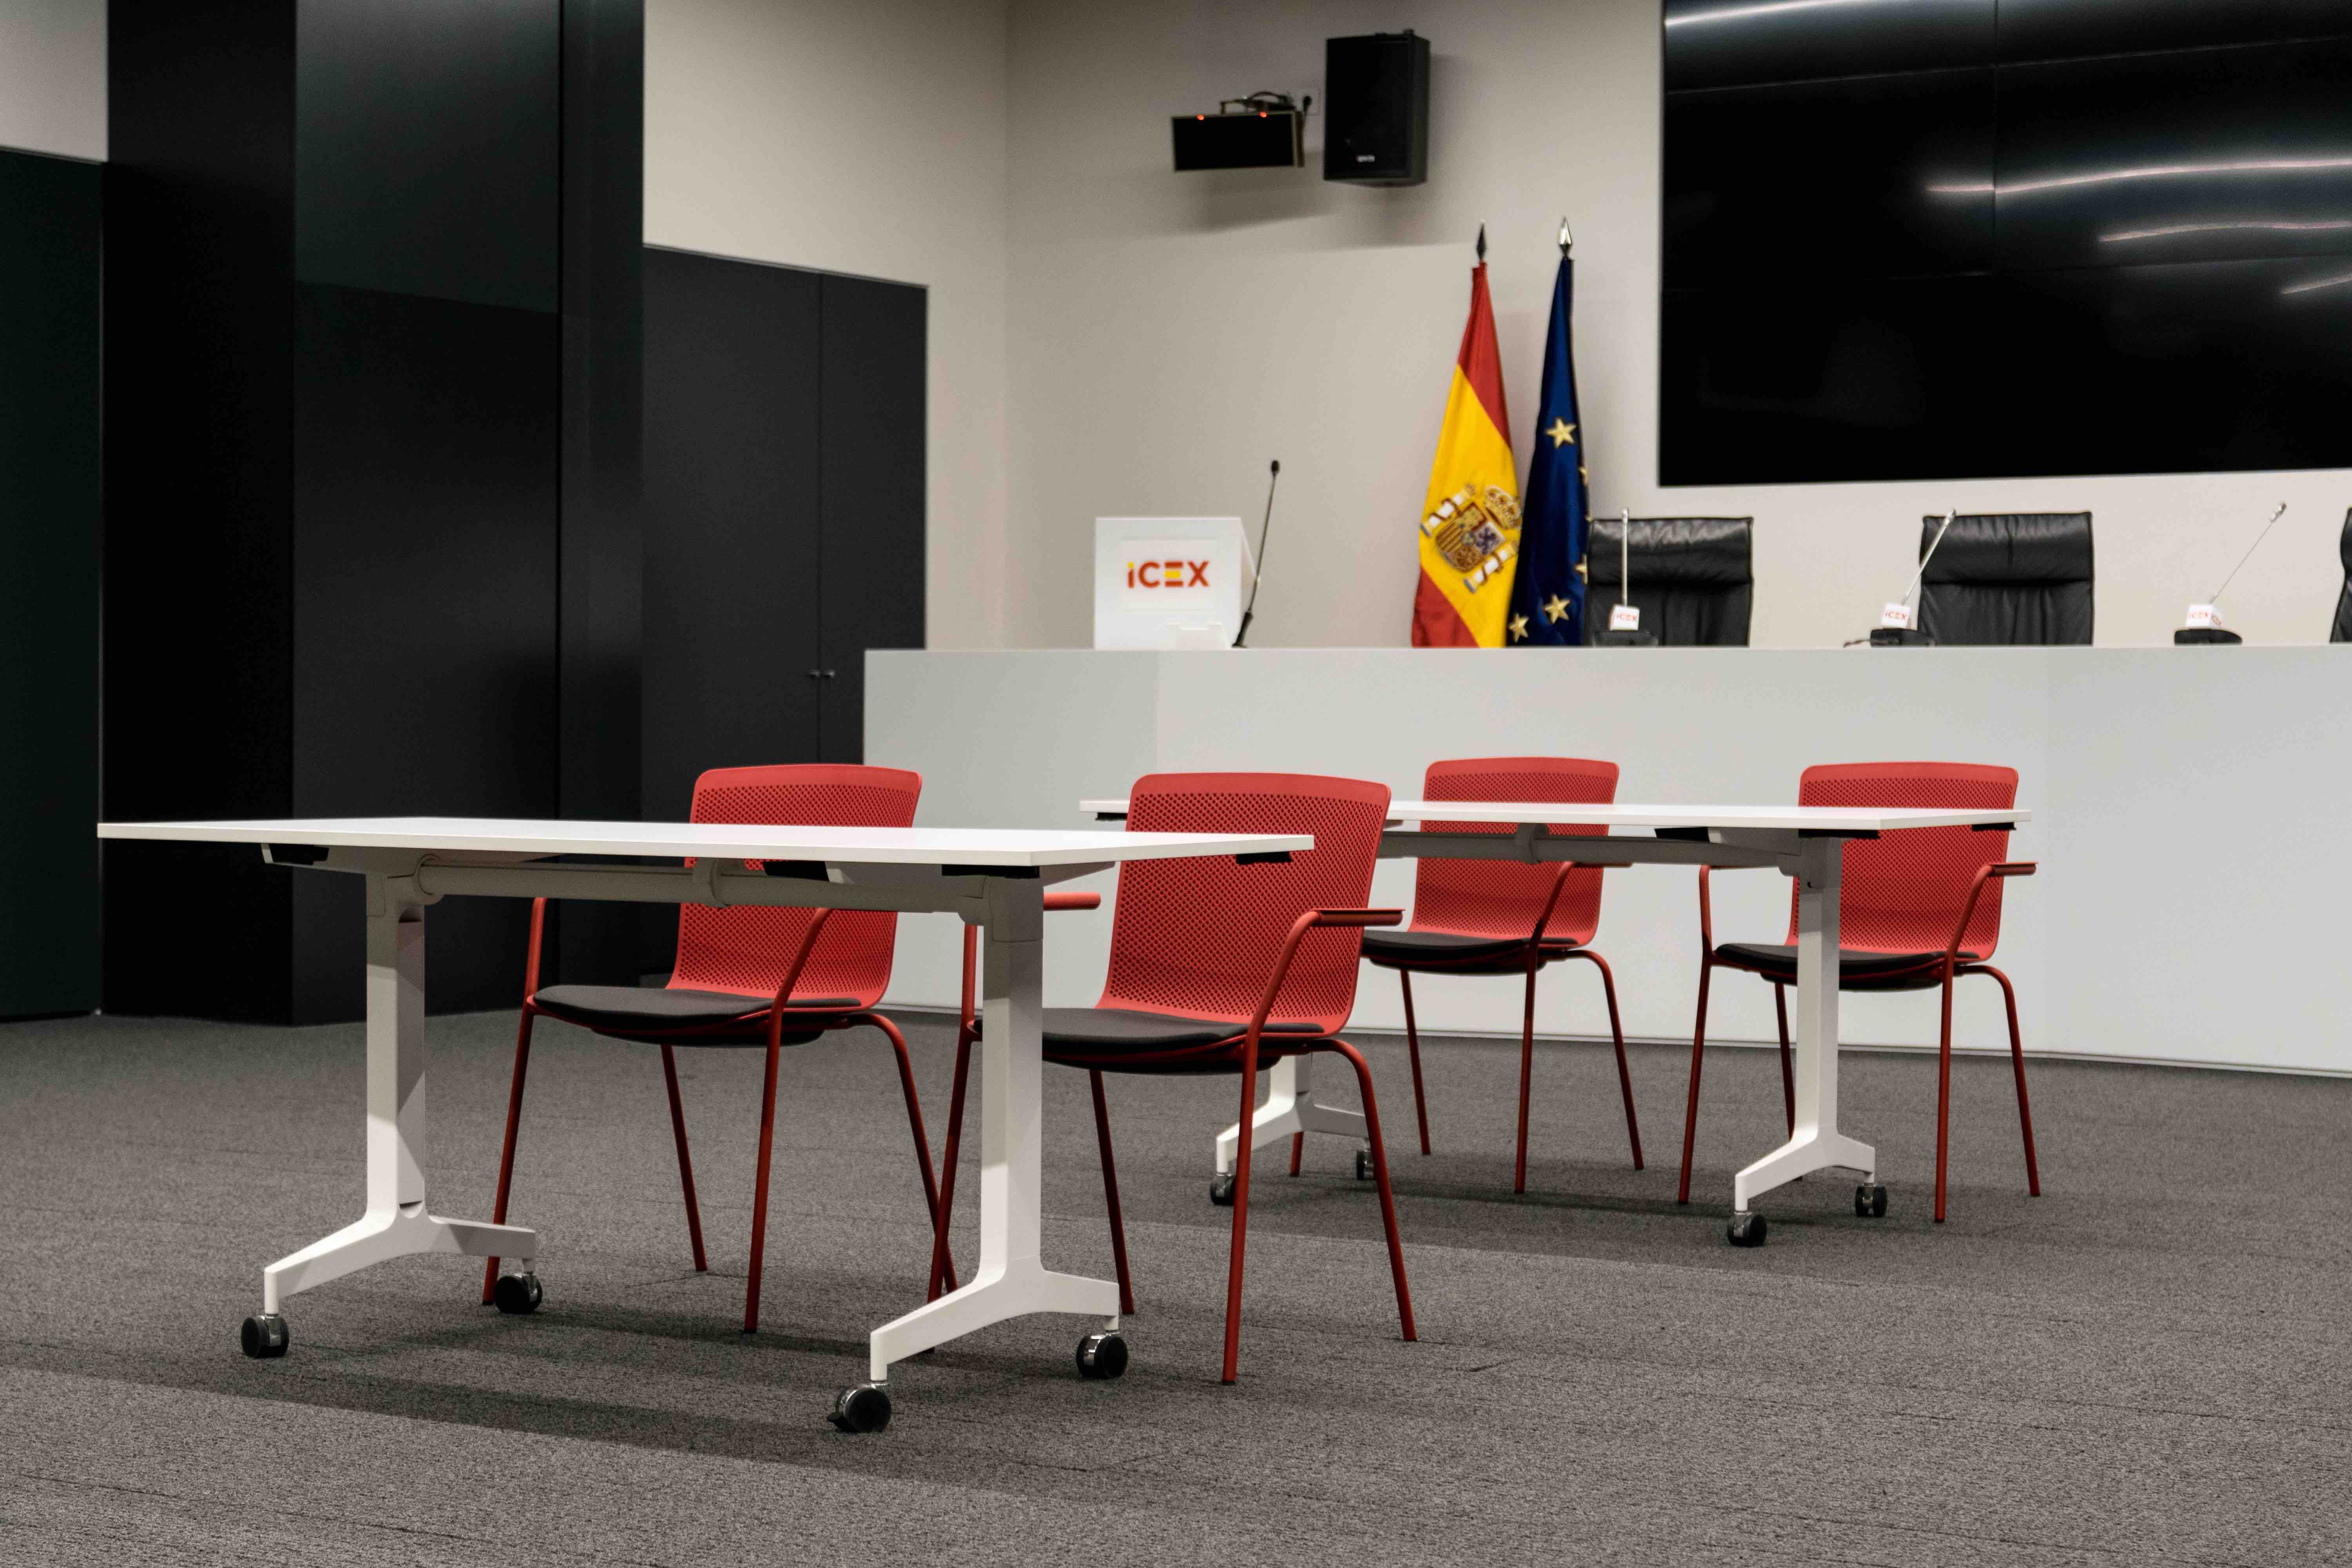 Oficinas del icex en madrid forma 5 for Oficina ser madrid